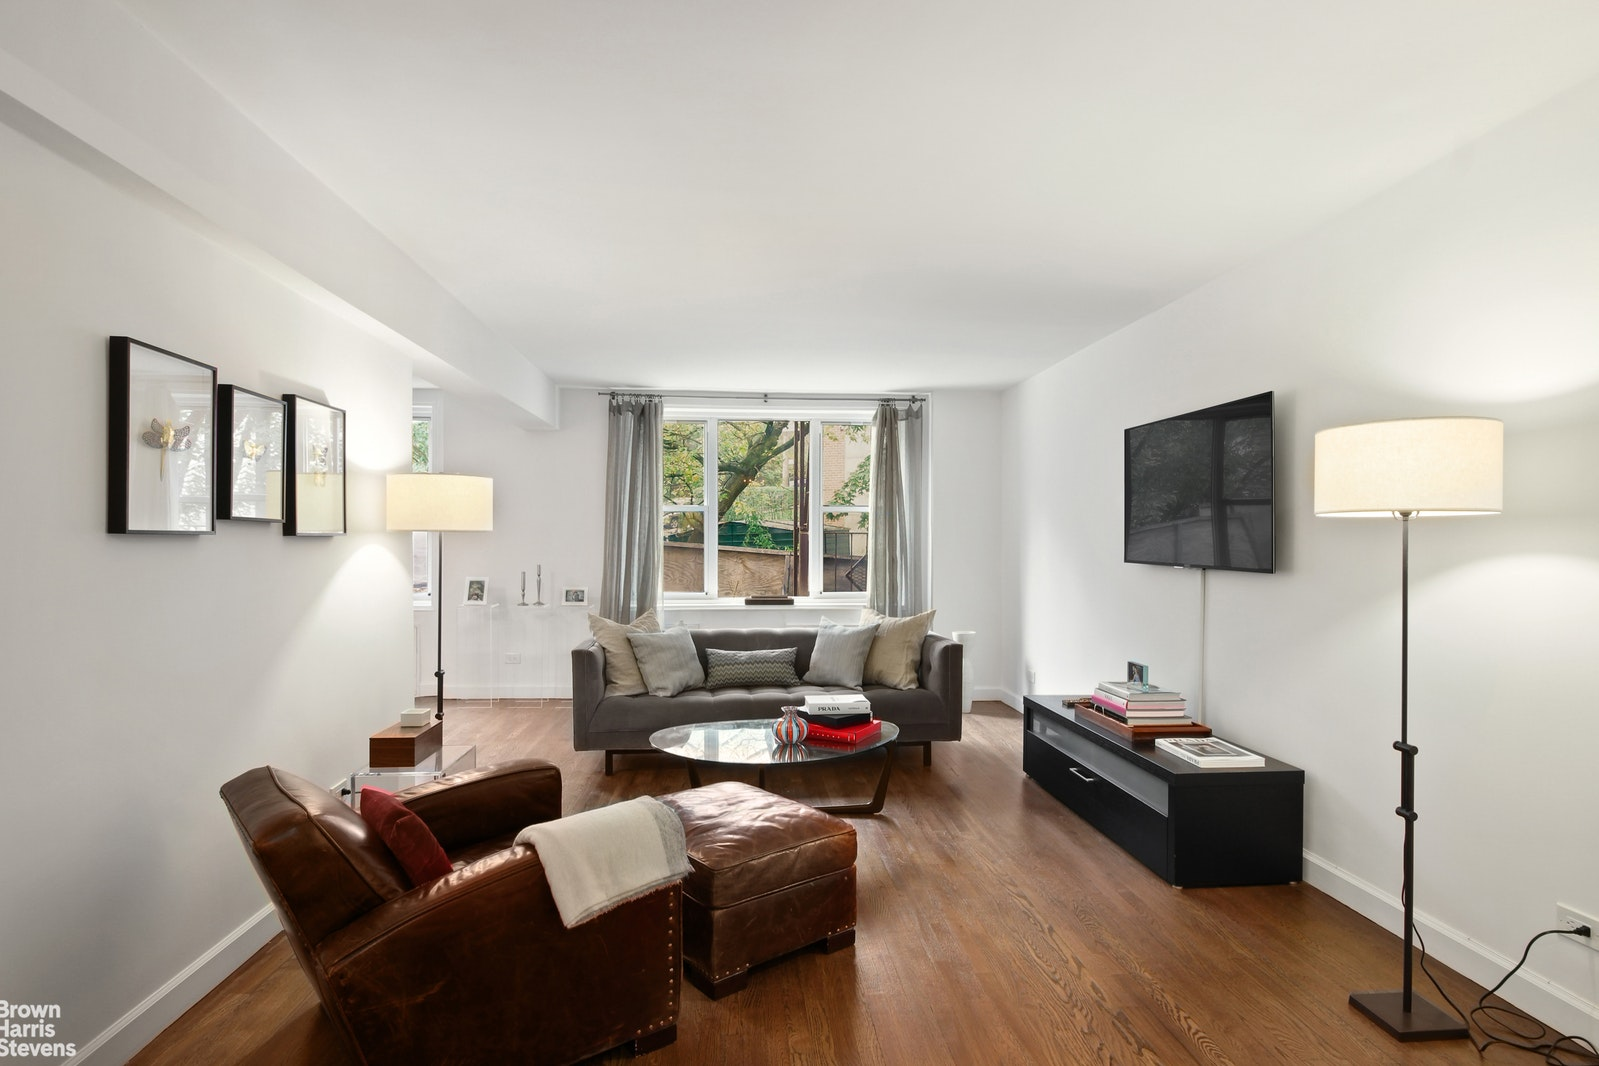 Apartment for sale at 2390 Palisade Avenue, Apt 2B